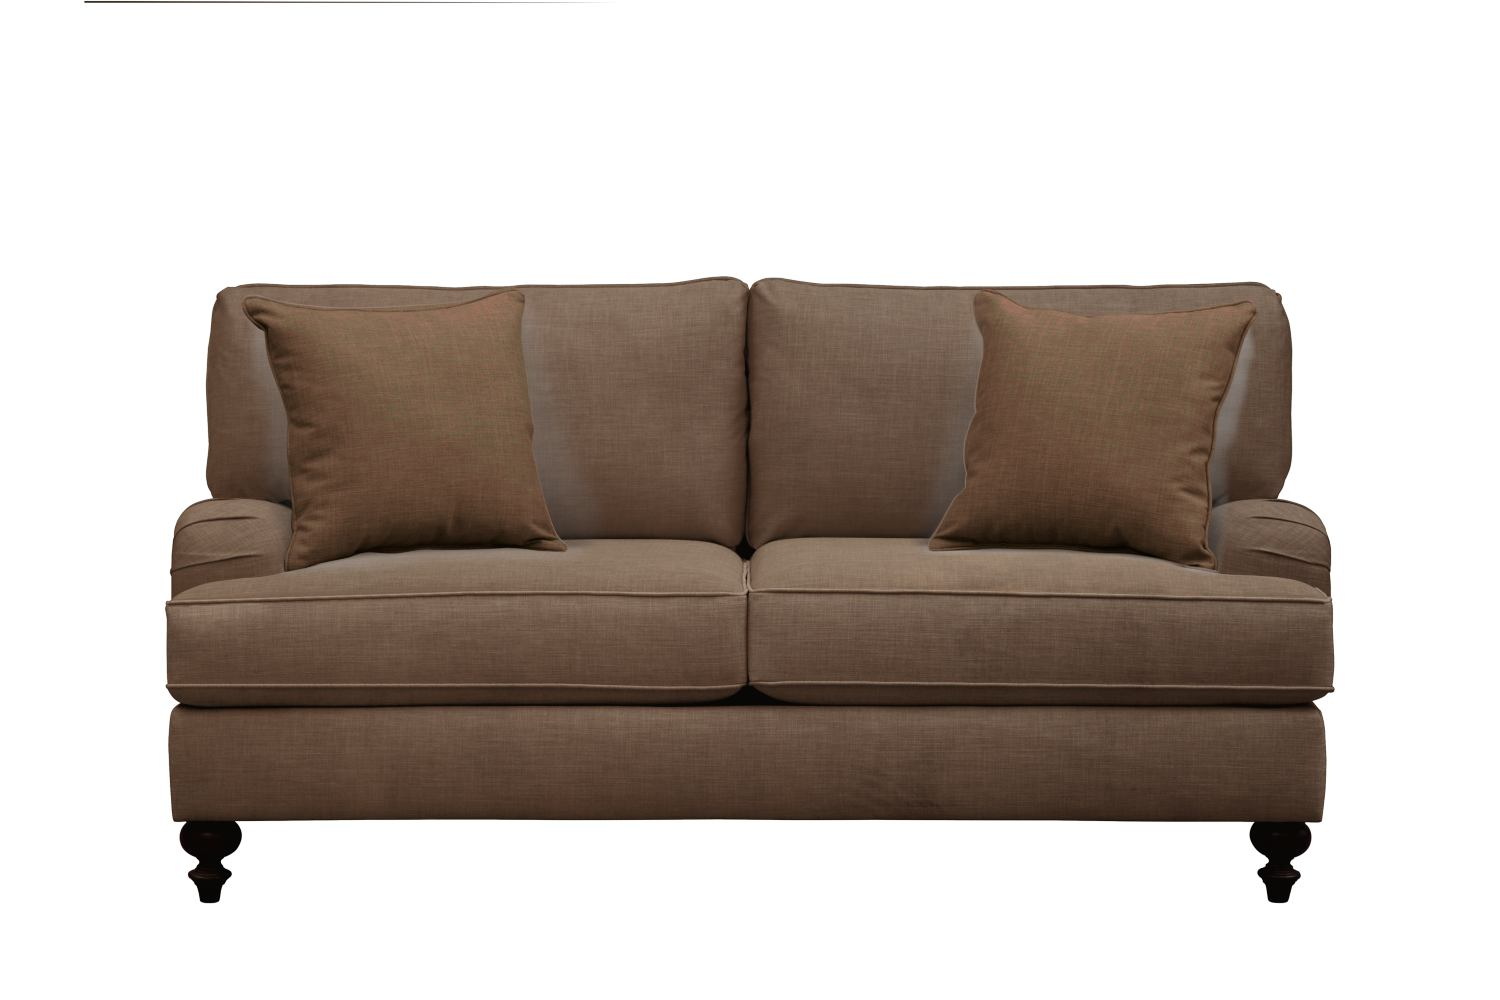 "Living Room Furniture - Avery English Arm Sofa 74"" Oakley III Java w/ Oakley III Java Pillow"